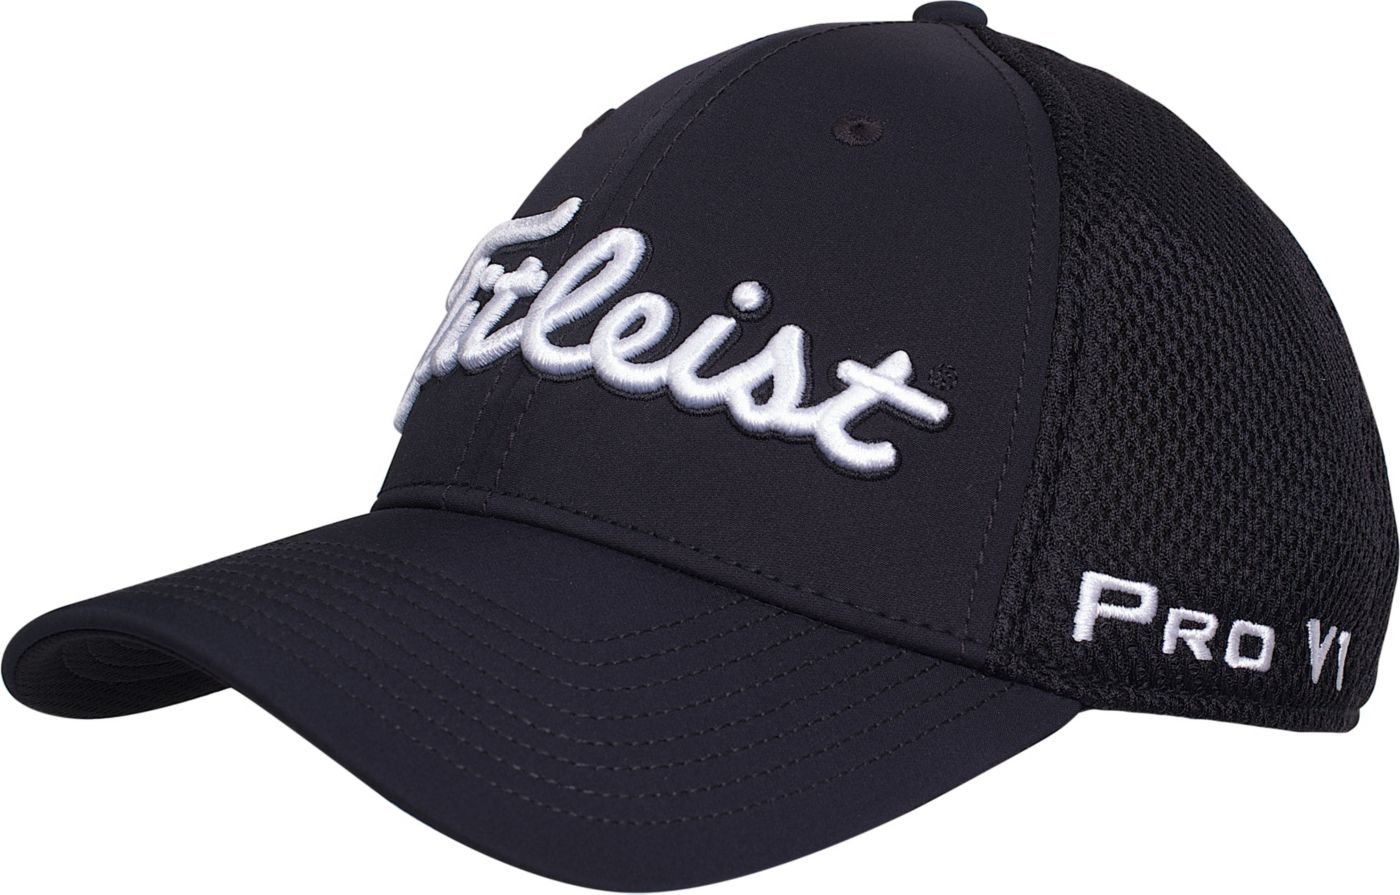 Titleist Men's Tour Sports Mesh Golf Hat